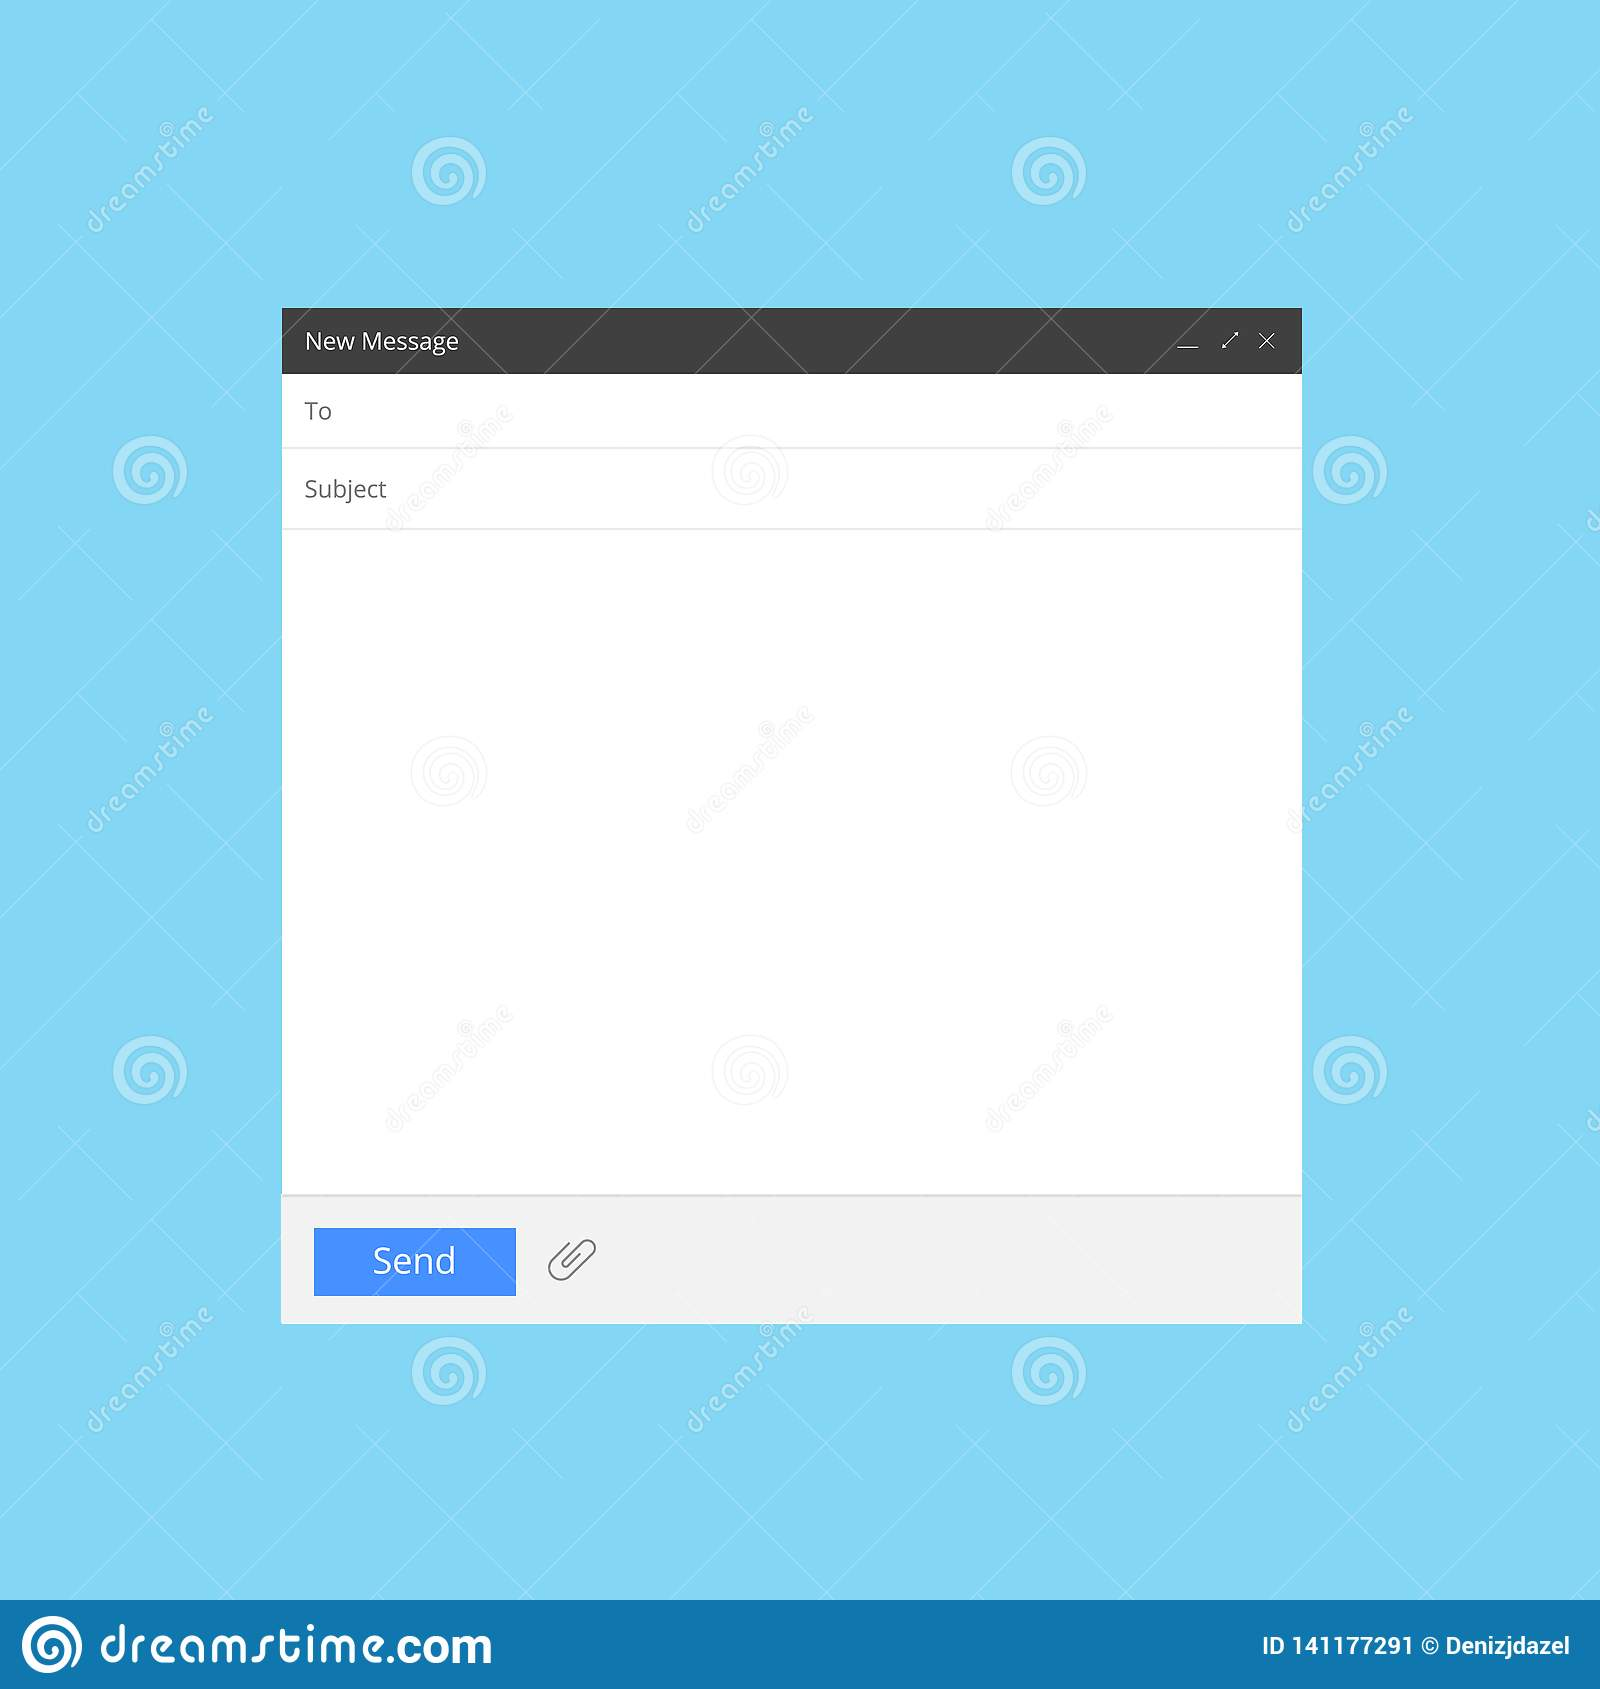 Blank Email Screen Mail Message Interface Blank Mockup Internet Window Computer Box Page Web Software Browser Vector Stock Vector Illustration Of Blog Flat 141177291